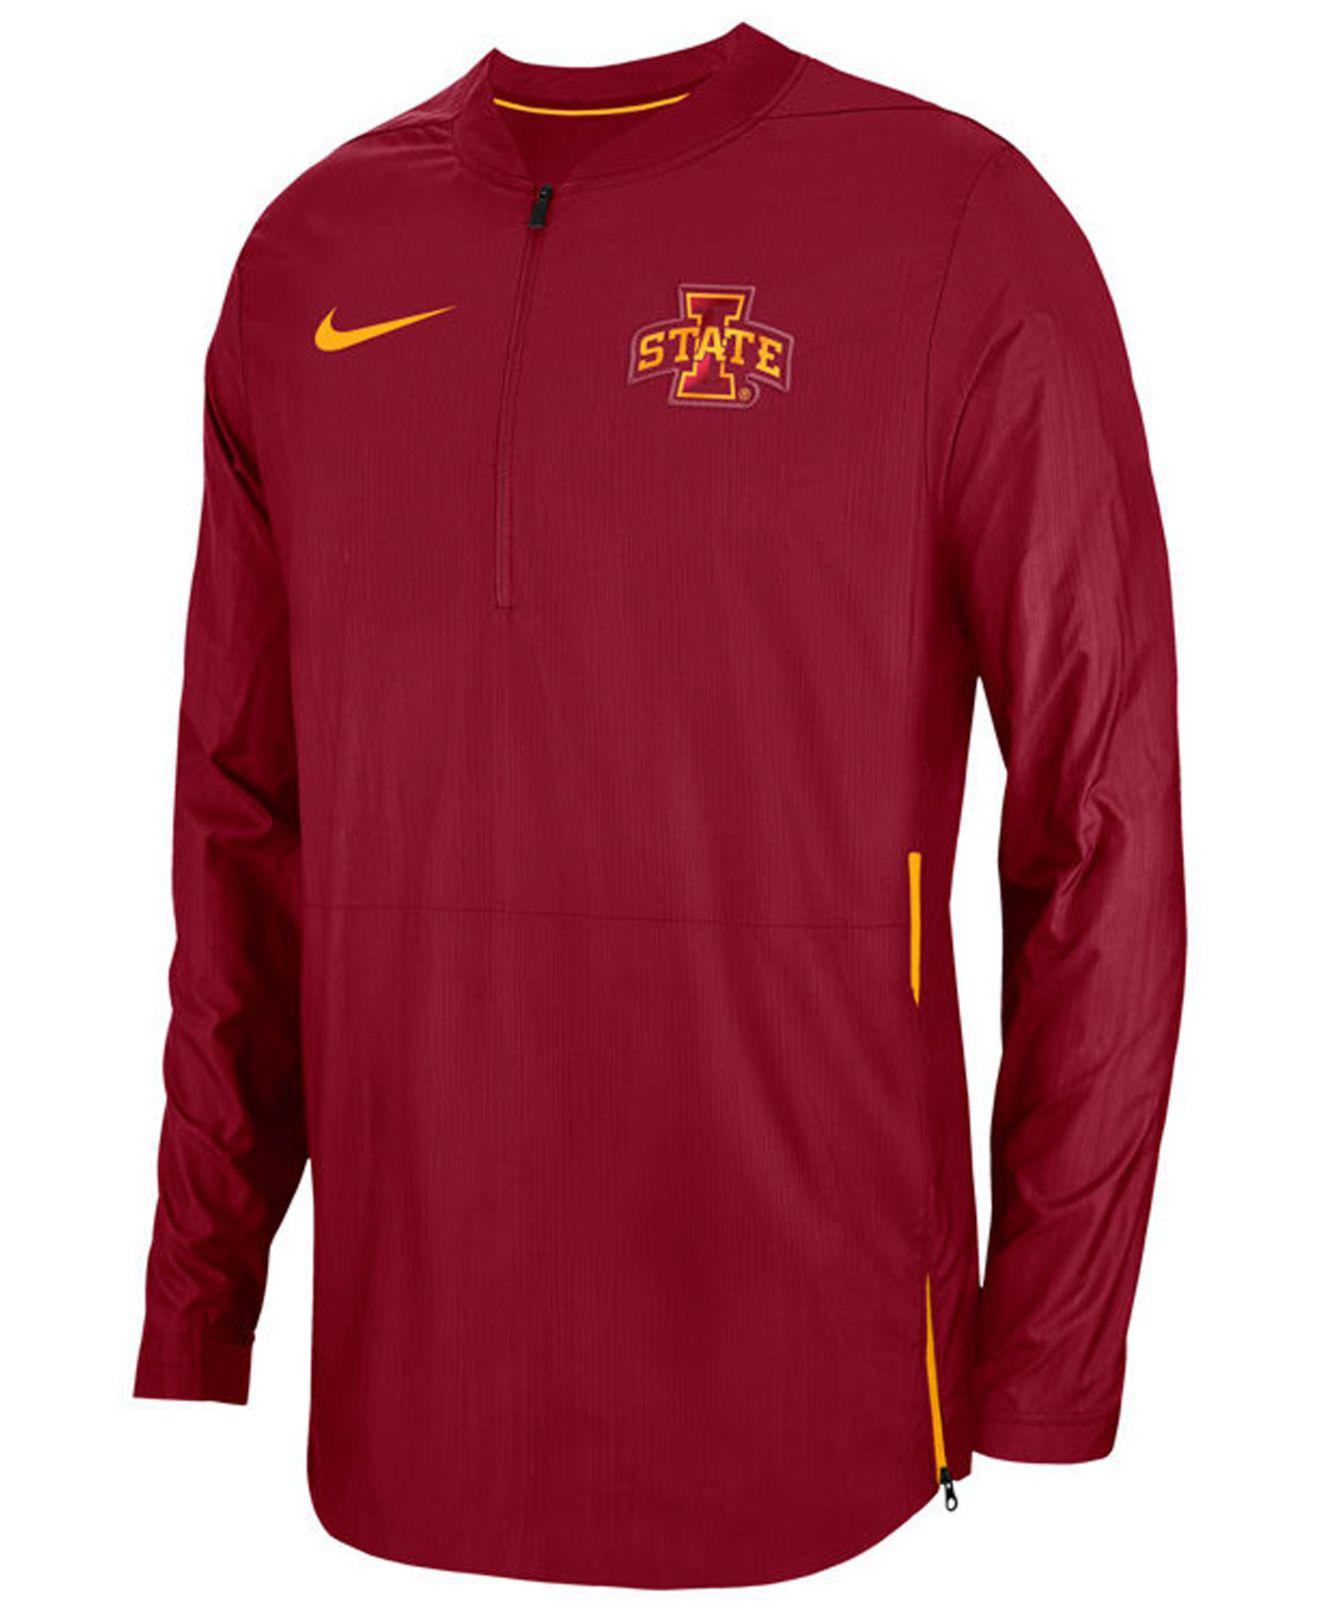 Lyst - Nike Iowa State Cyclones Lockdown Jacket in Red for Men e28ab7e05